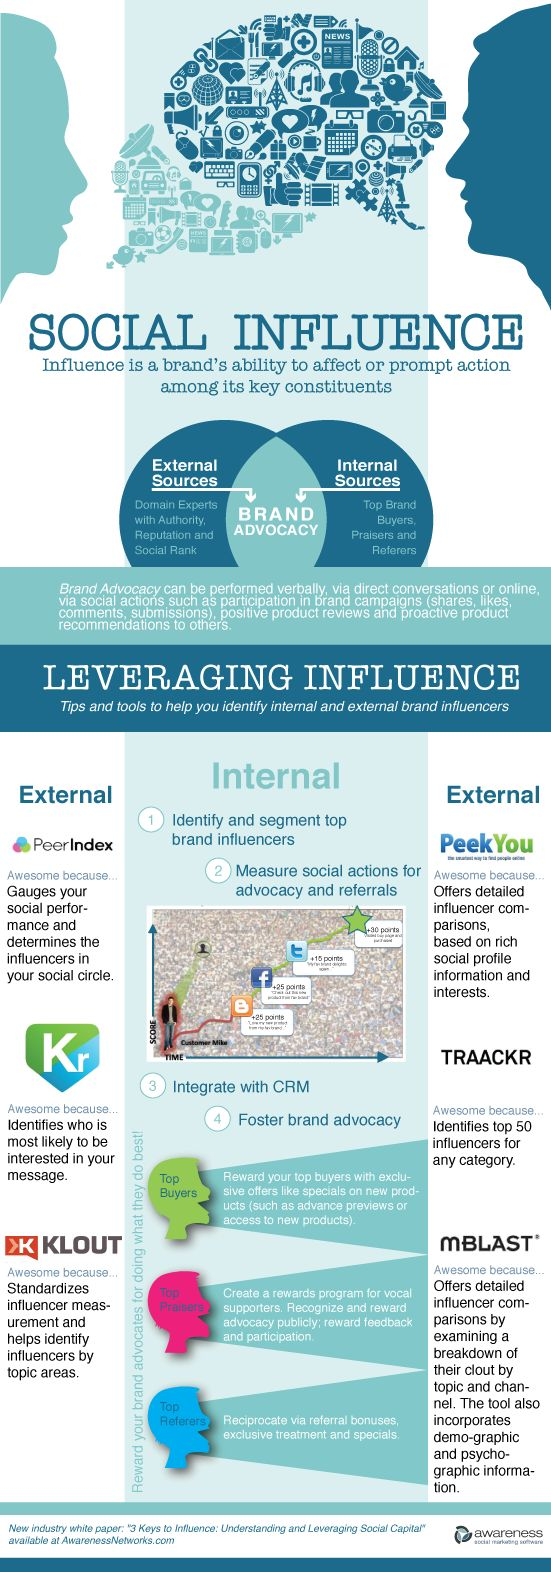 #Social Influence - A Brand's Ability to Affect or Prompt Action among Its Key Constituents [#Infographic] #socialmedia